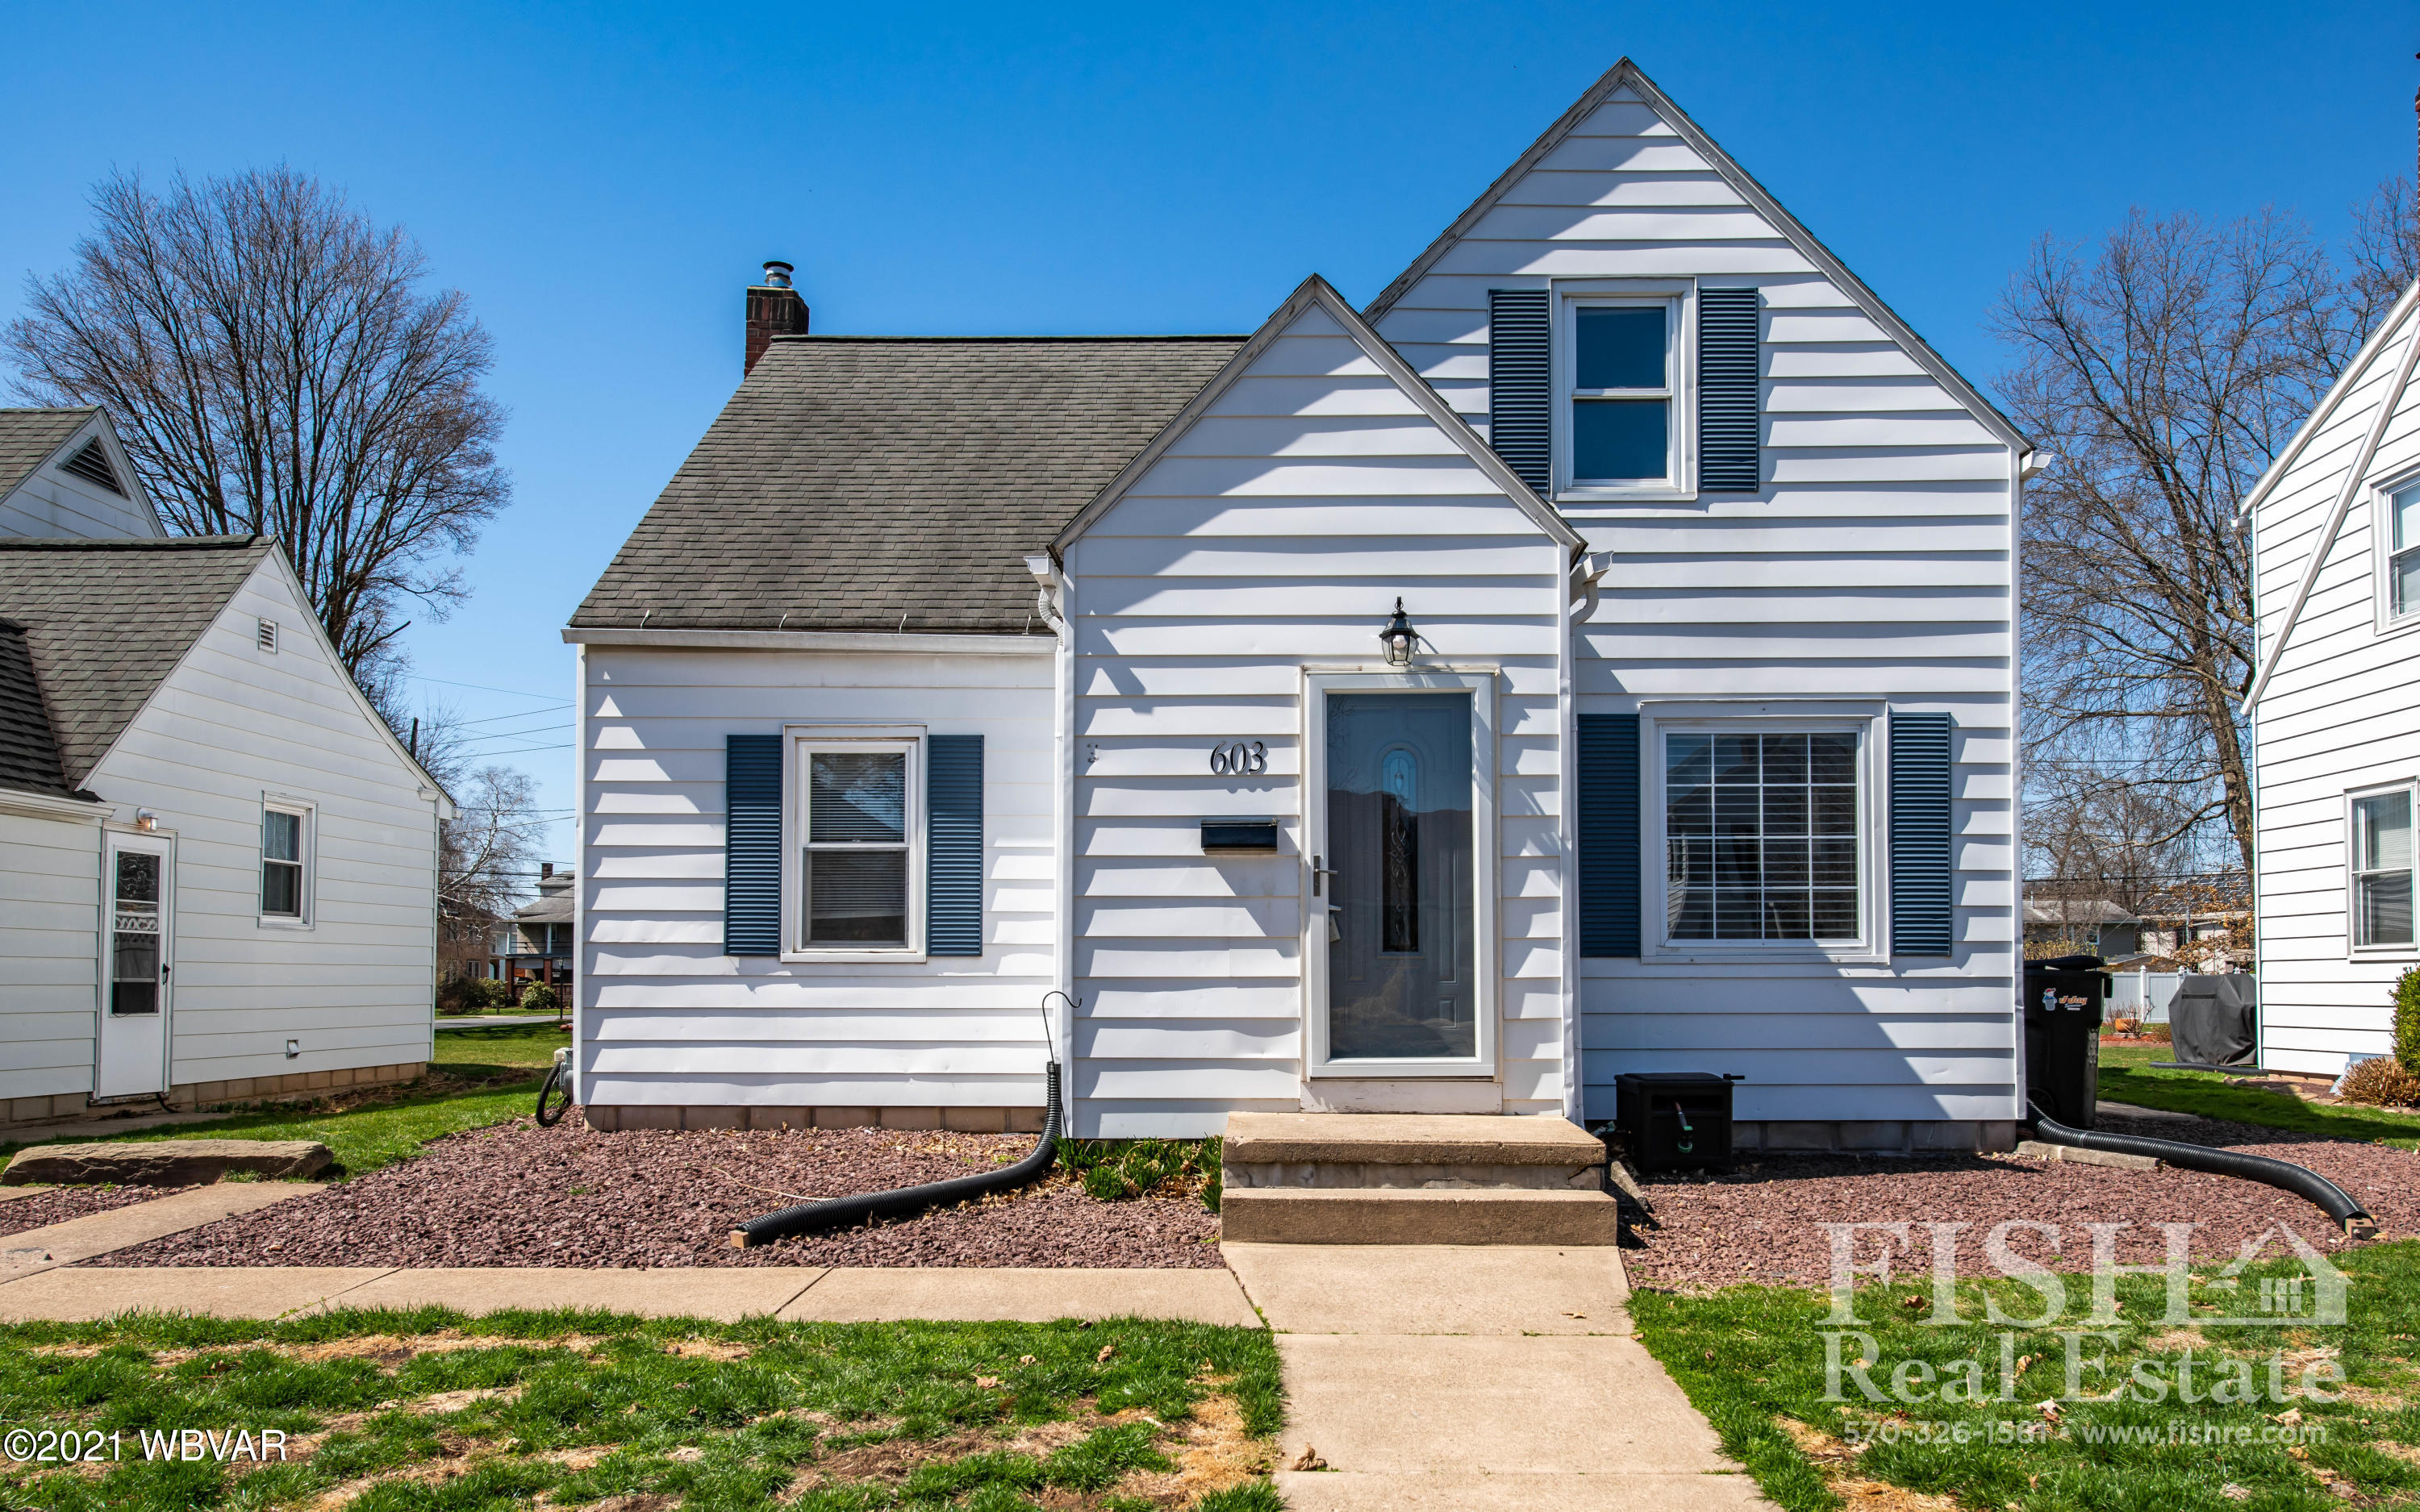 603 ARCH STREET, Montoursville, PA 17754, 4 Bedrooms Bedrooms, ,1 BathroomBathrooms,Residential,For sale,ARCH,WB-92197